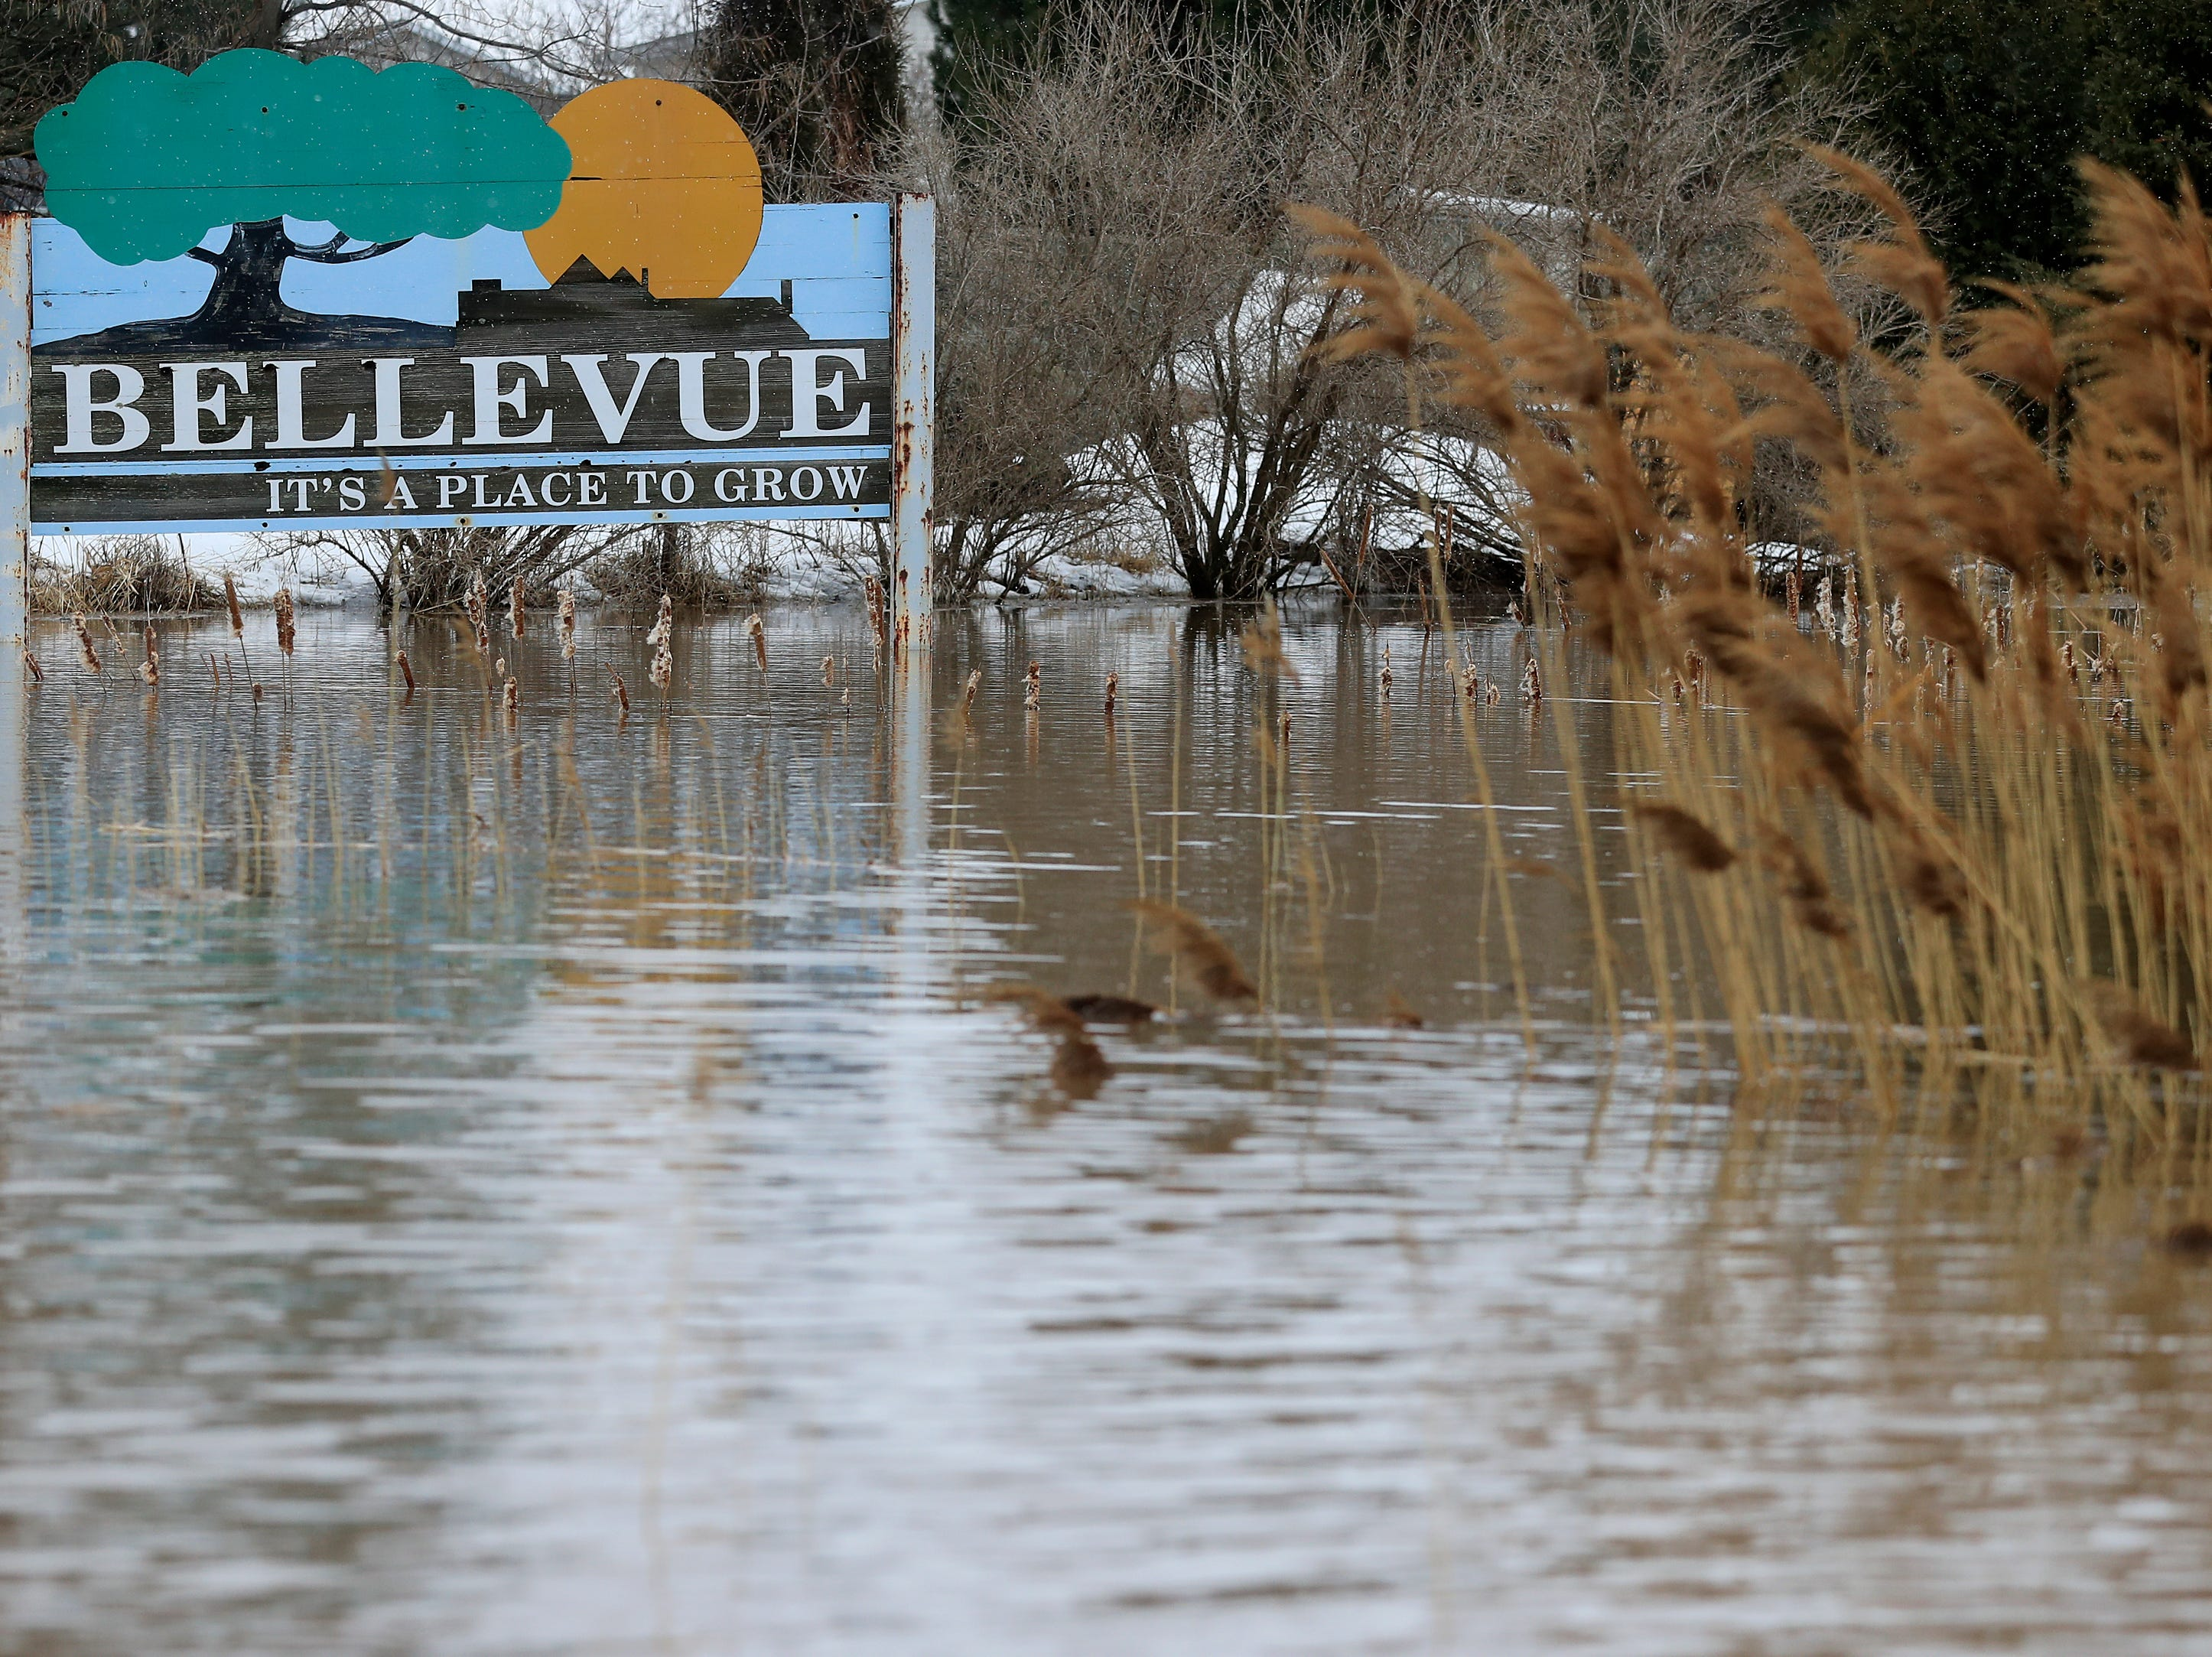 East river floodwaters are shown on Friday, March 15, 2019 in Bellevue, Wis.